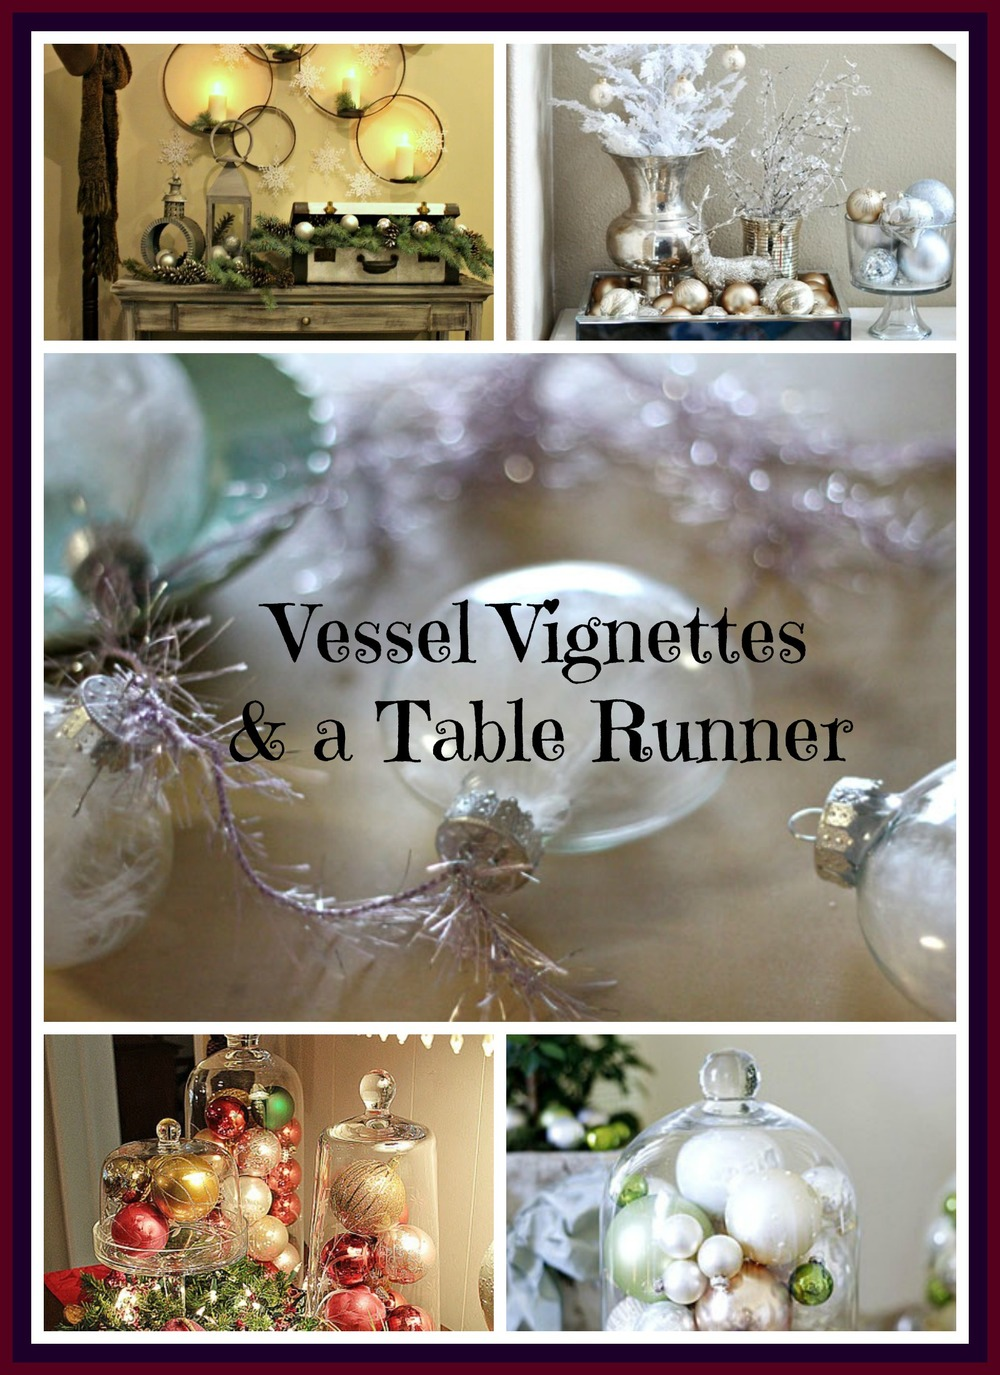 "Gift yourself a few ""vessels"" as shown here and simply transform your space throughout the year.  The antique suitcase is a great vessel find! Of course, asking for that one thing and I ended up with two - no problem!  Compliment your design scheme with table runners.  Get out those fabric remnants or Gramma's lace doilies and highlight the Vessel Vignettes.  Given a couple of hours I could pull this off!  Love these Pinterest finds."